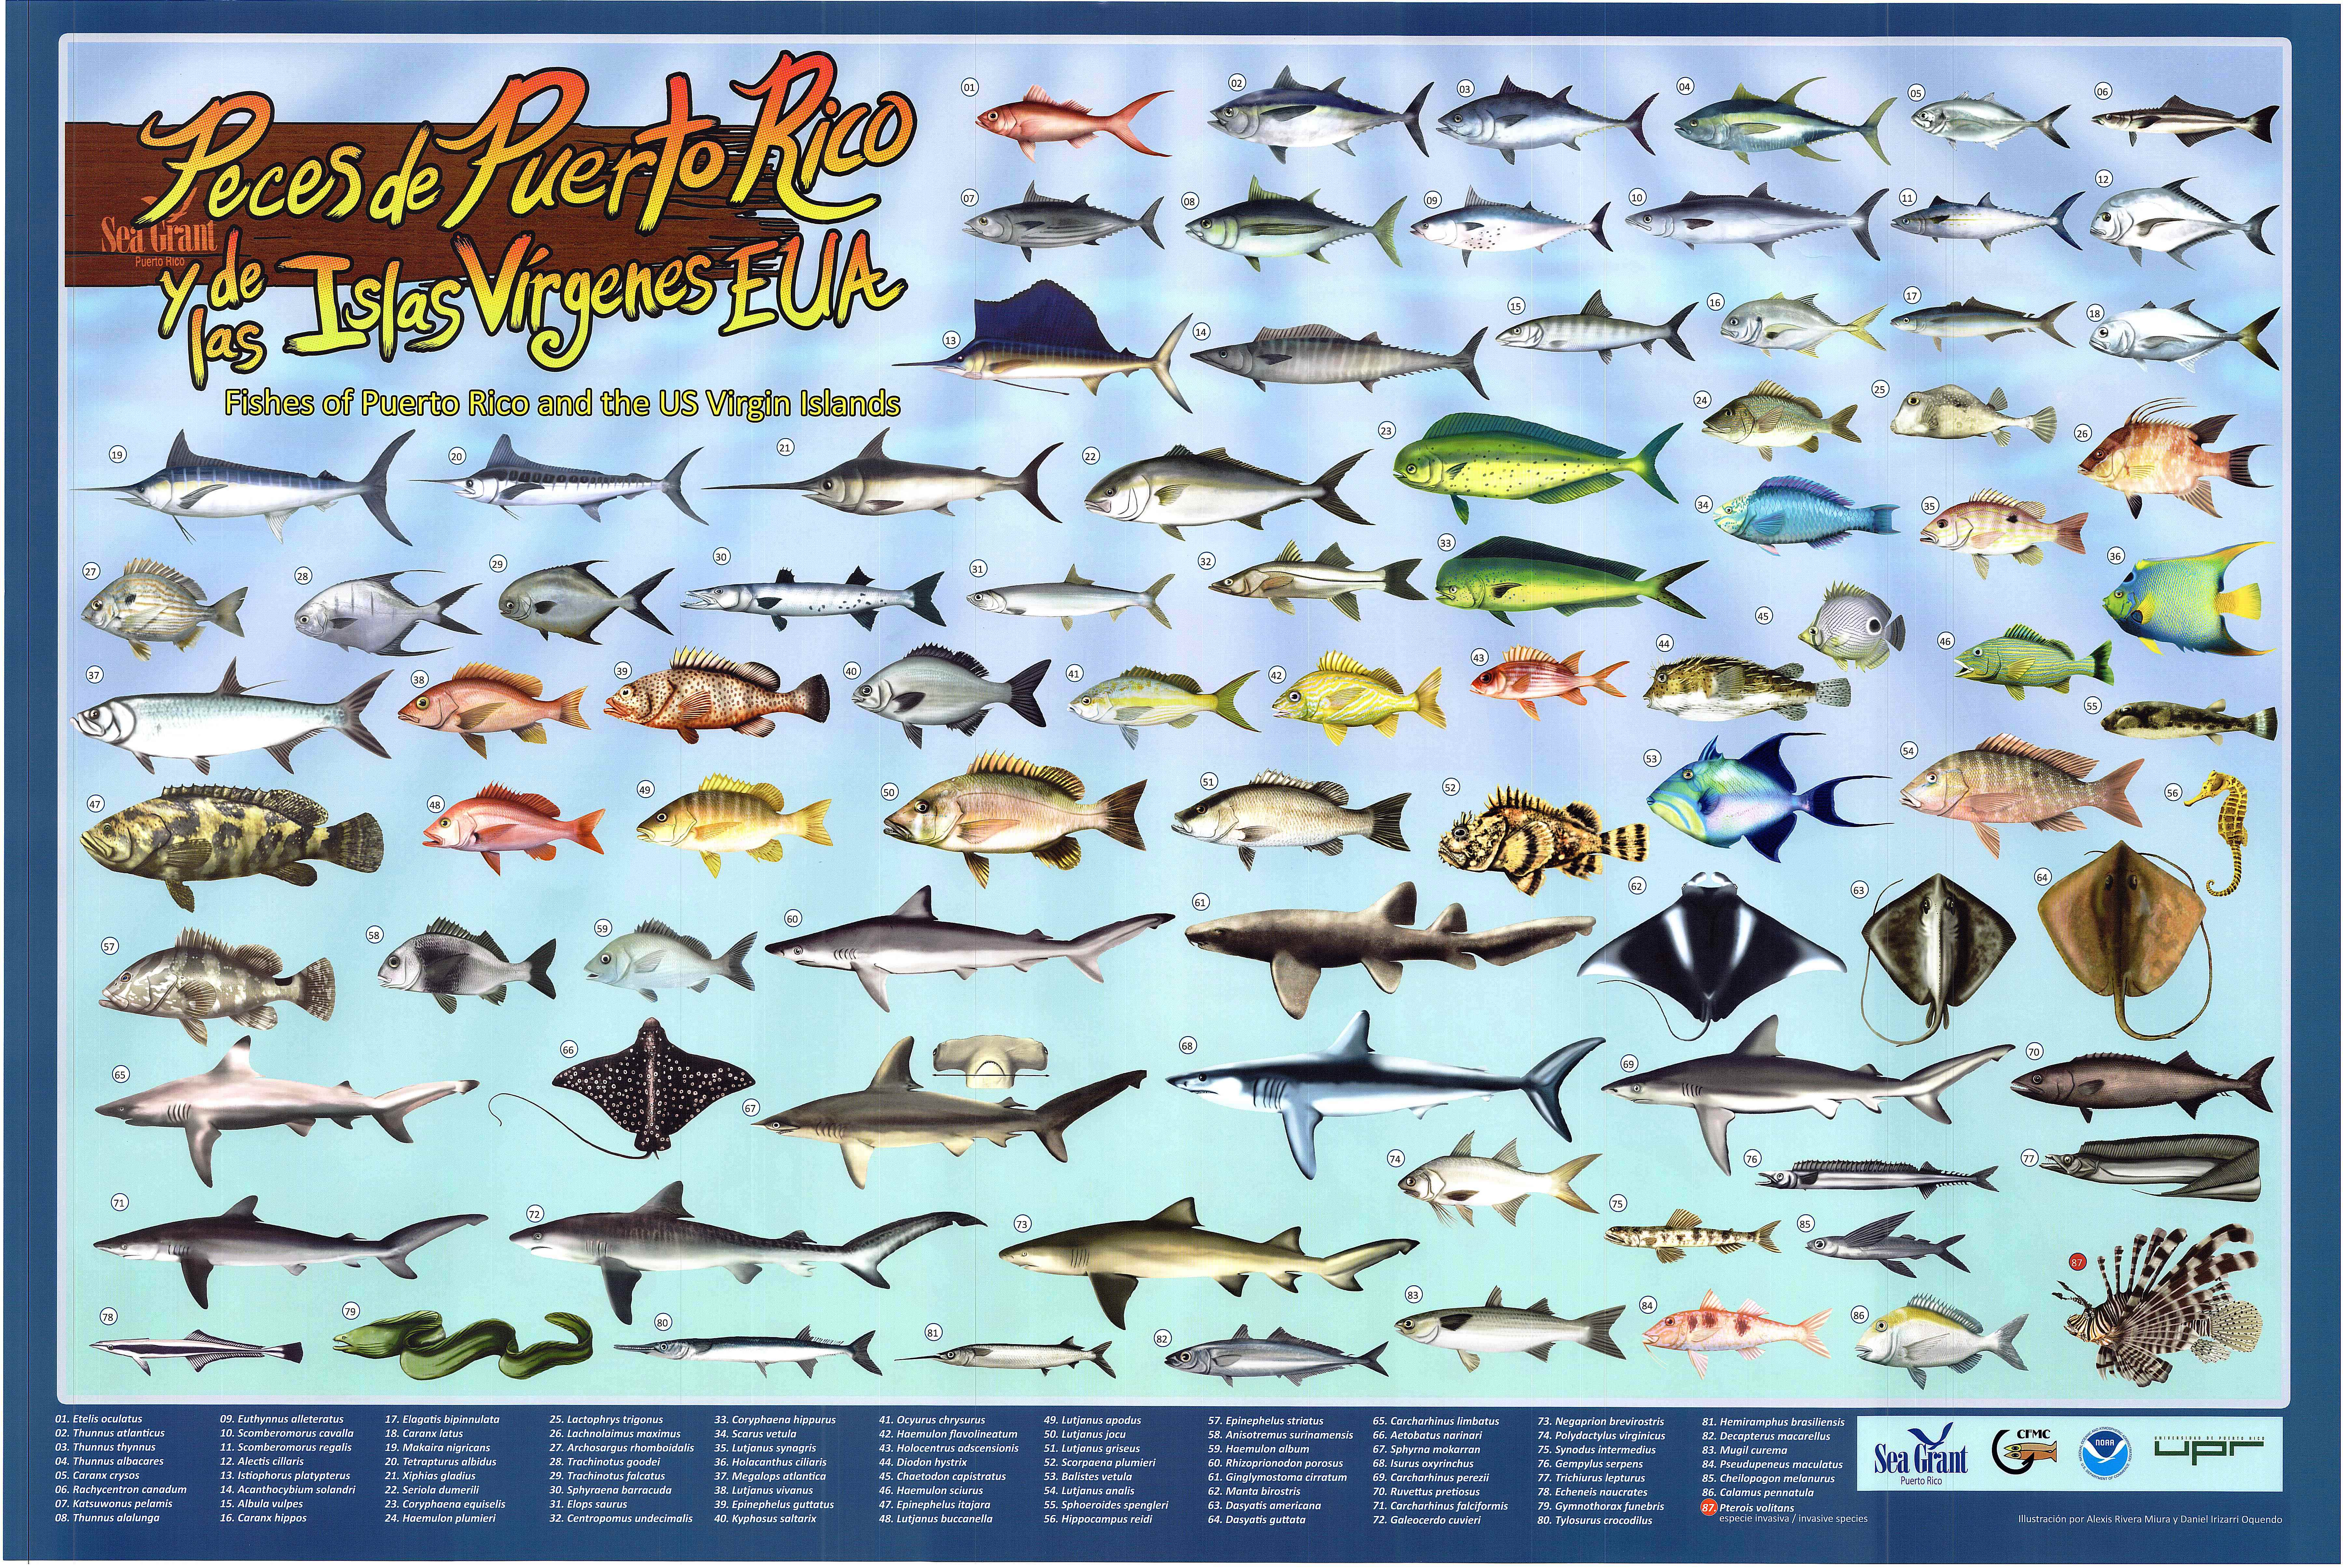 I made a best edible reef fish of puerto rico poster for Caribbean reef fish